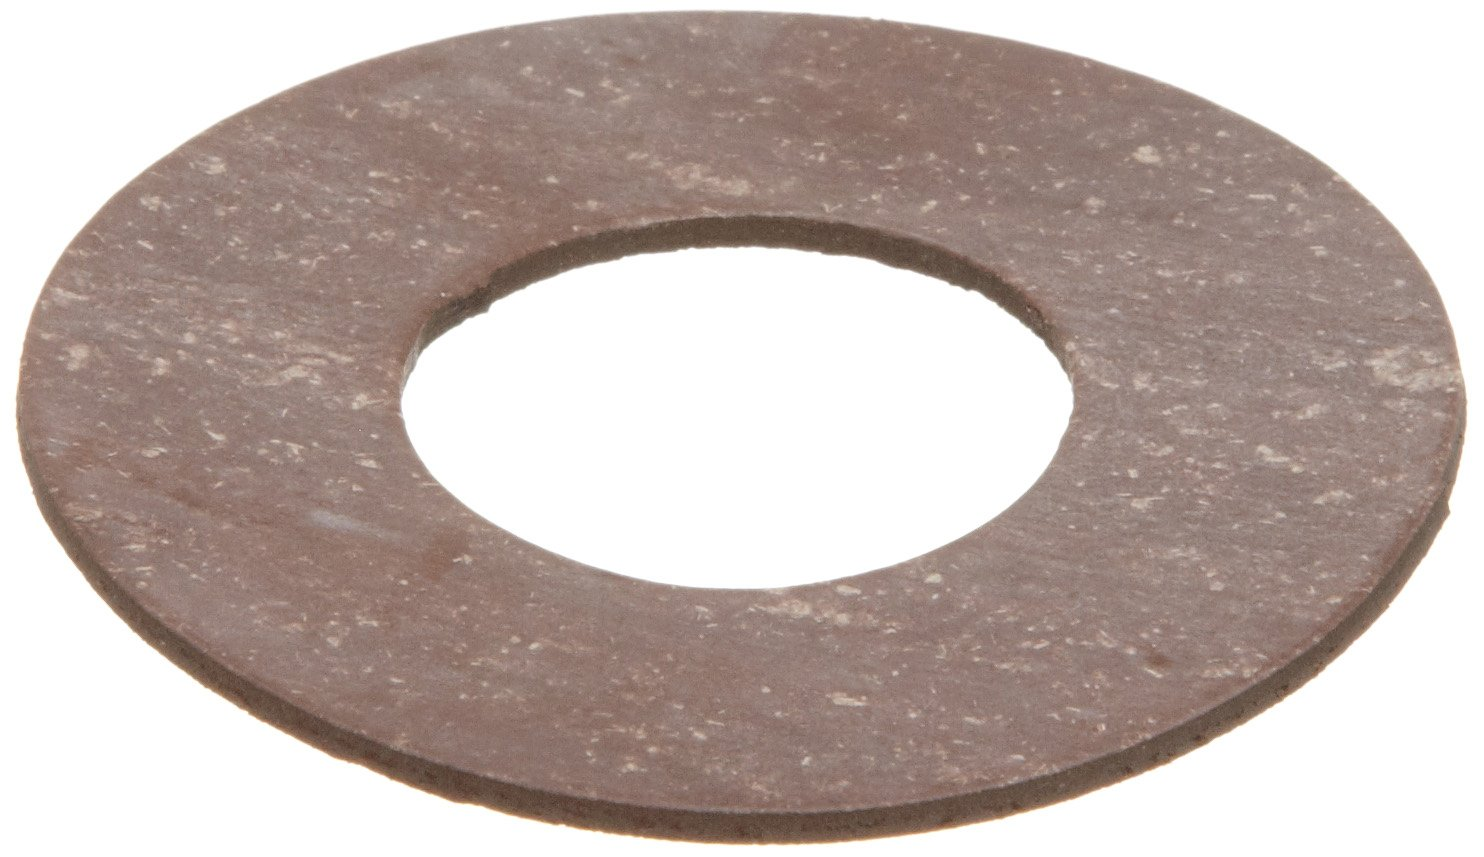 1-1//16 ID Ring 3//4 Pipe Size Pack of 1 1//16 Thick Fits Class 150 Flange 2-1//4 OD Graphite//Buna-N Flange Gasket Mahogany